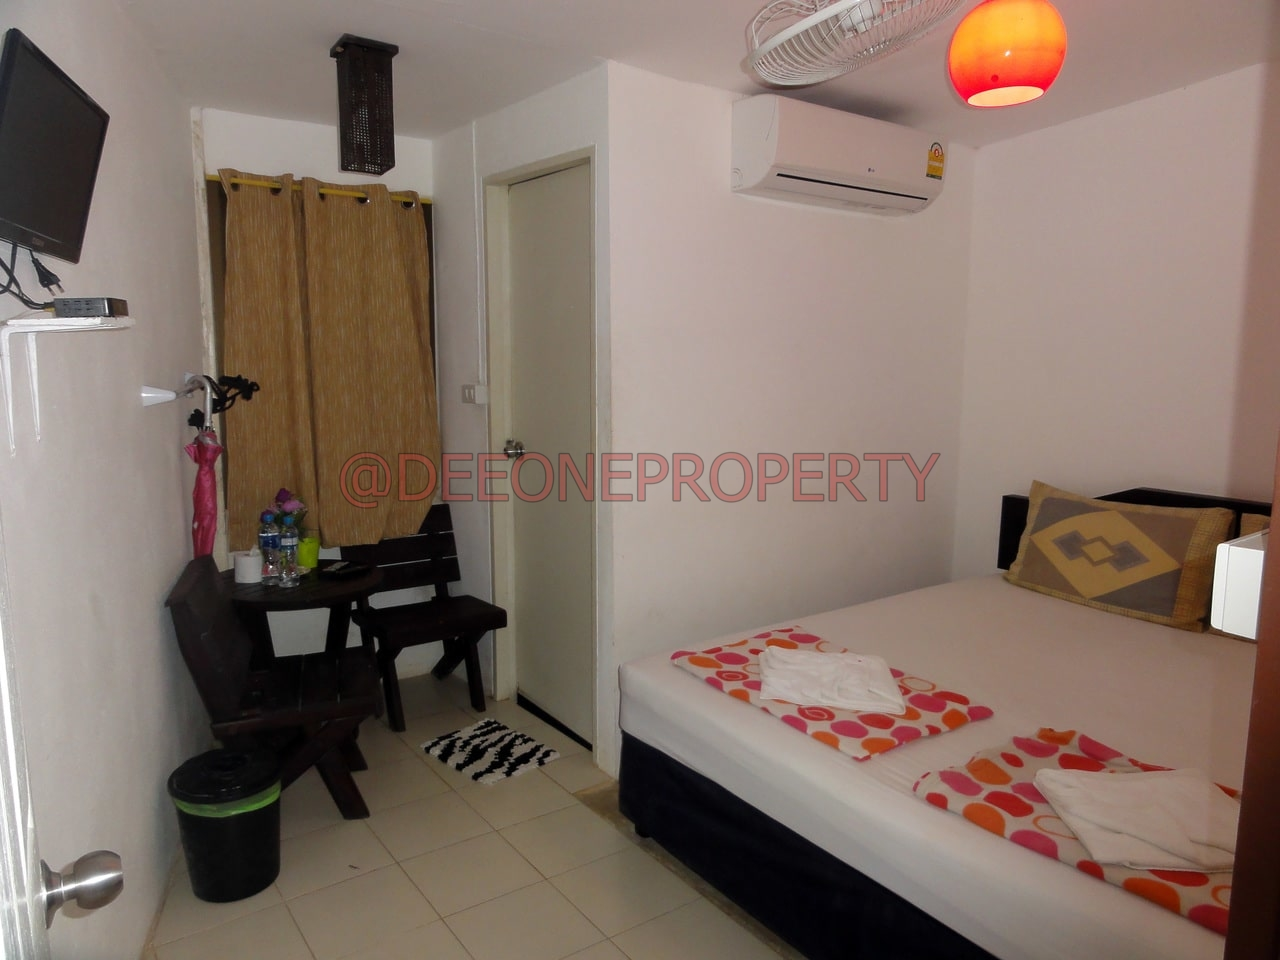 small room for rent white sand beach koh chang ForZetapark Small Room For Rent